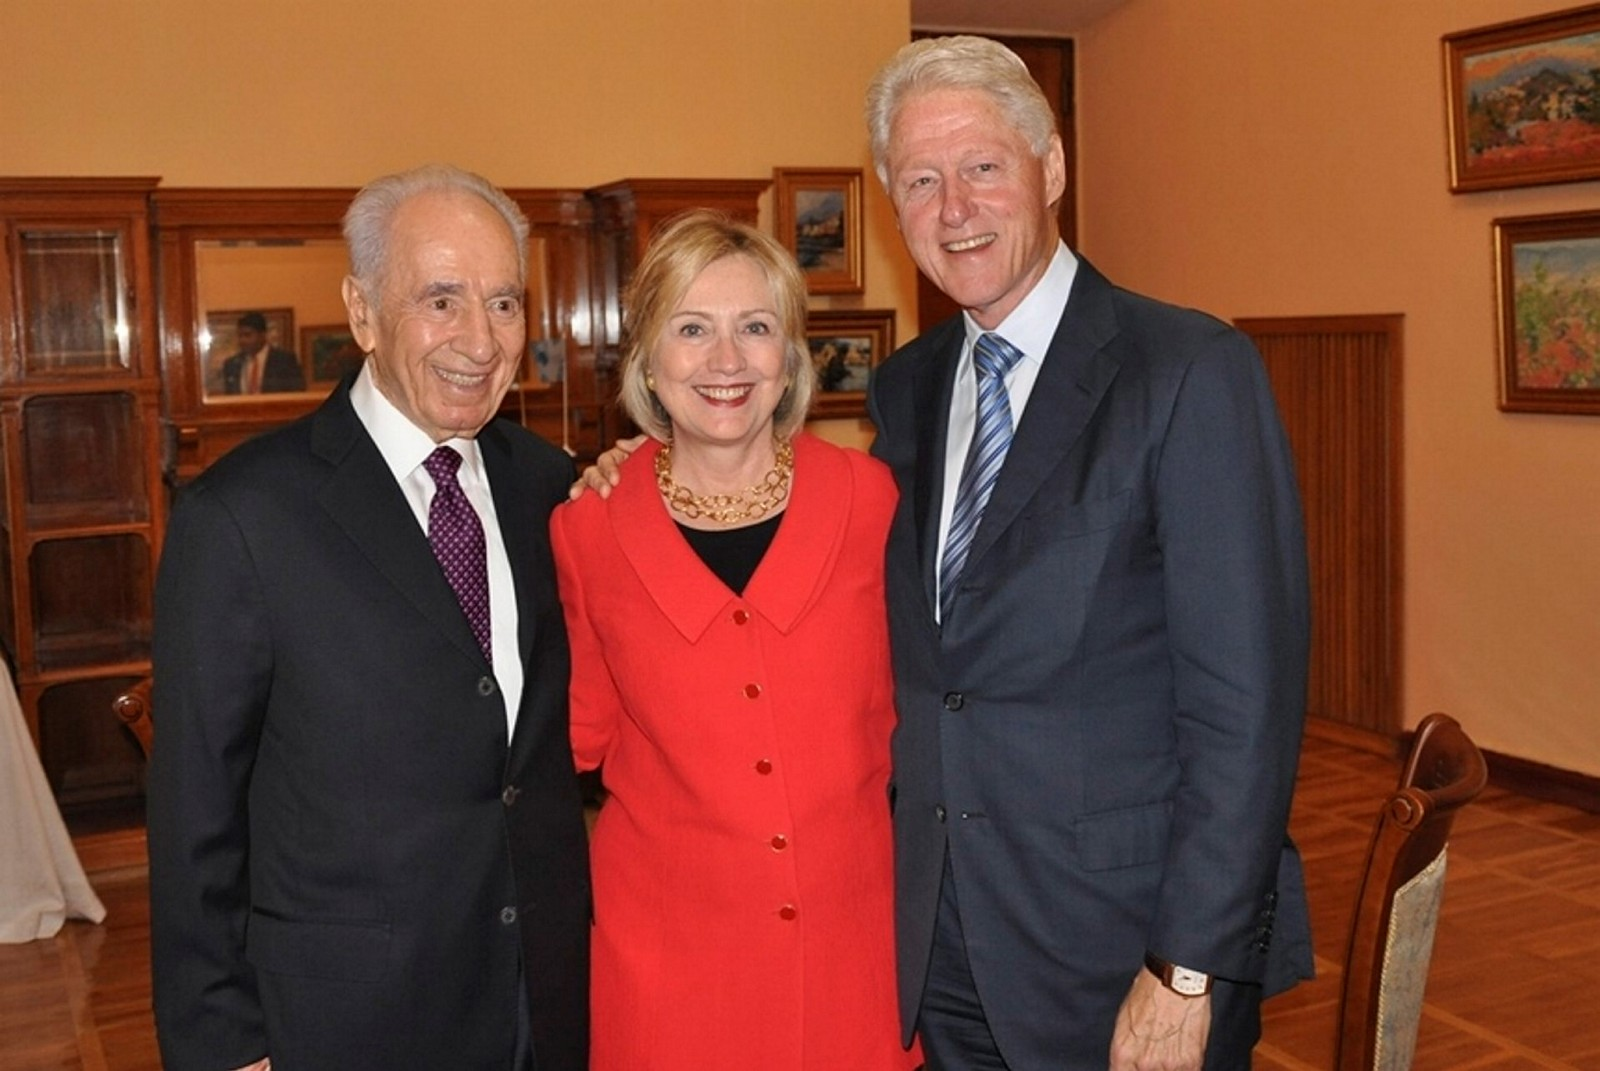 Shimon Peres meets with former US president Bill Clinton and US democratic presidential candidate Hillary Clinton at a conference in Ukraine in 2013. Photo by Flash90